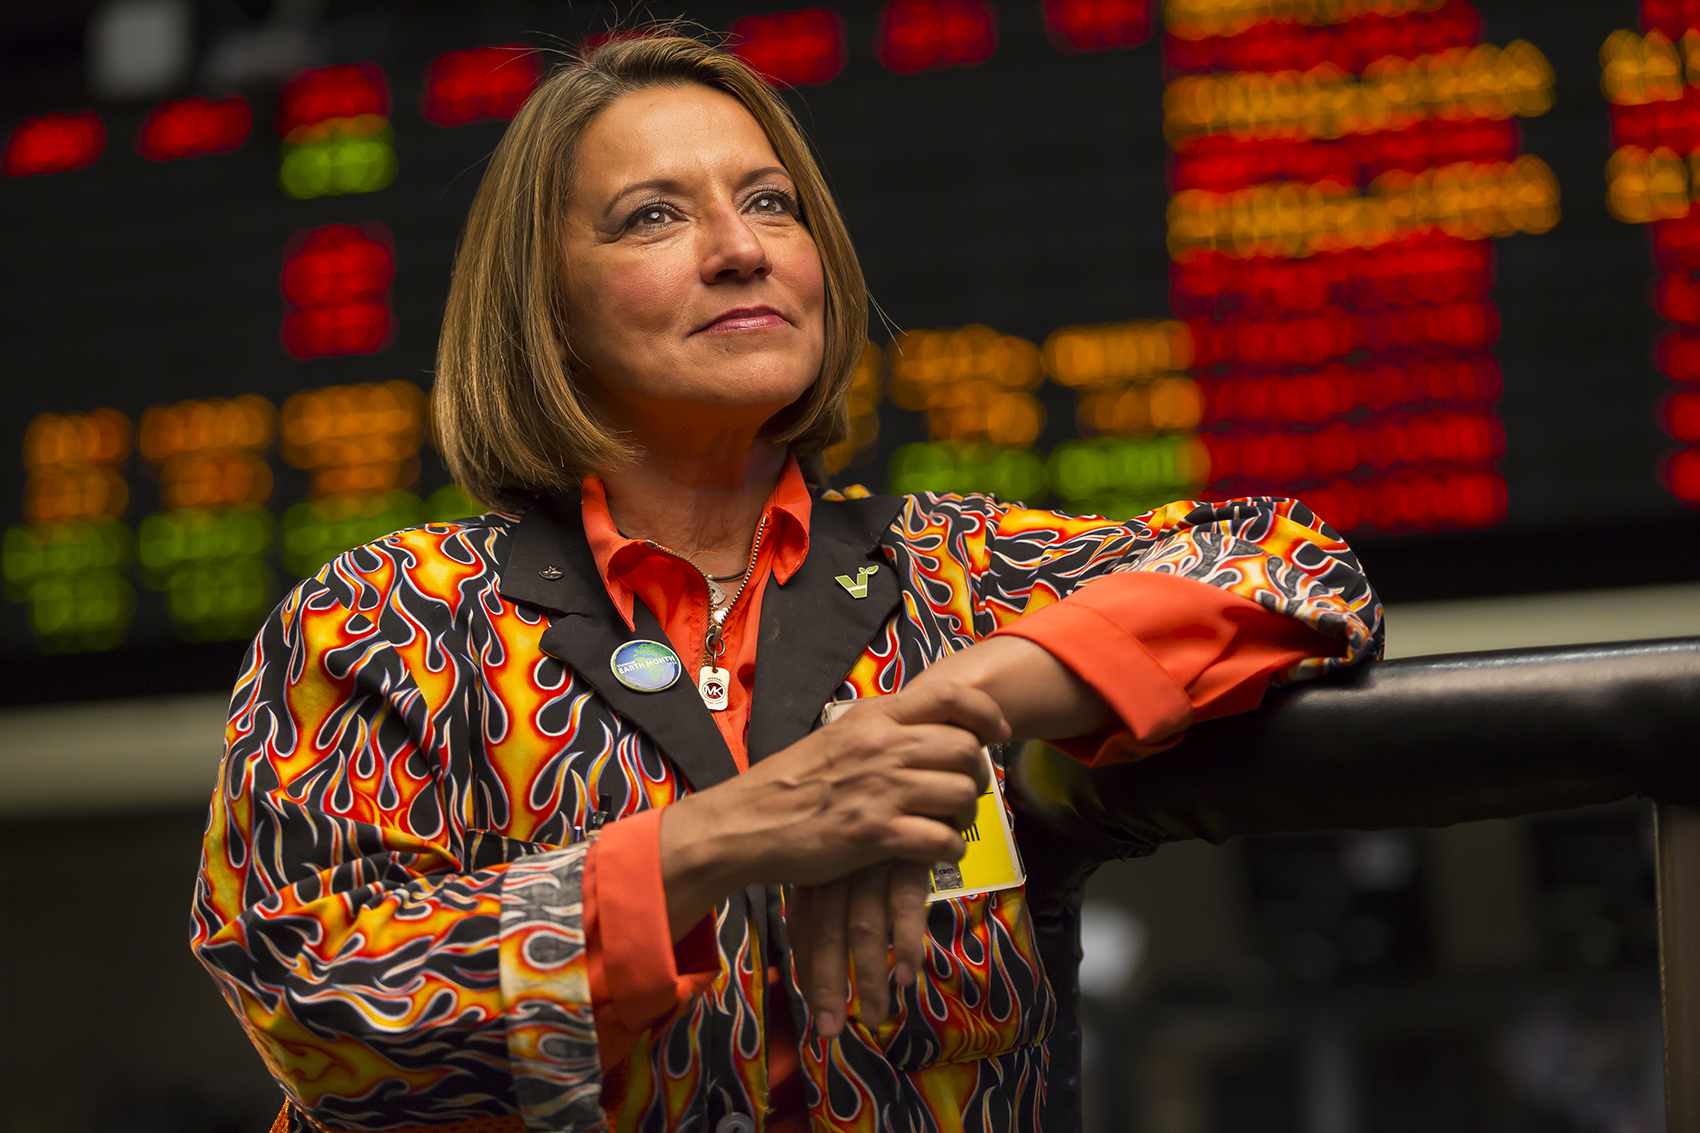 Virginia McGathey, poses for a portrait on the floor of the Board of Trade in Chicago on May 20, 2015. Manuel Martinez/ Crains Chicago Business